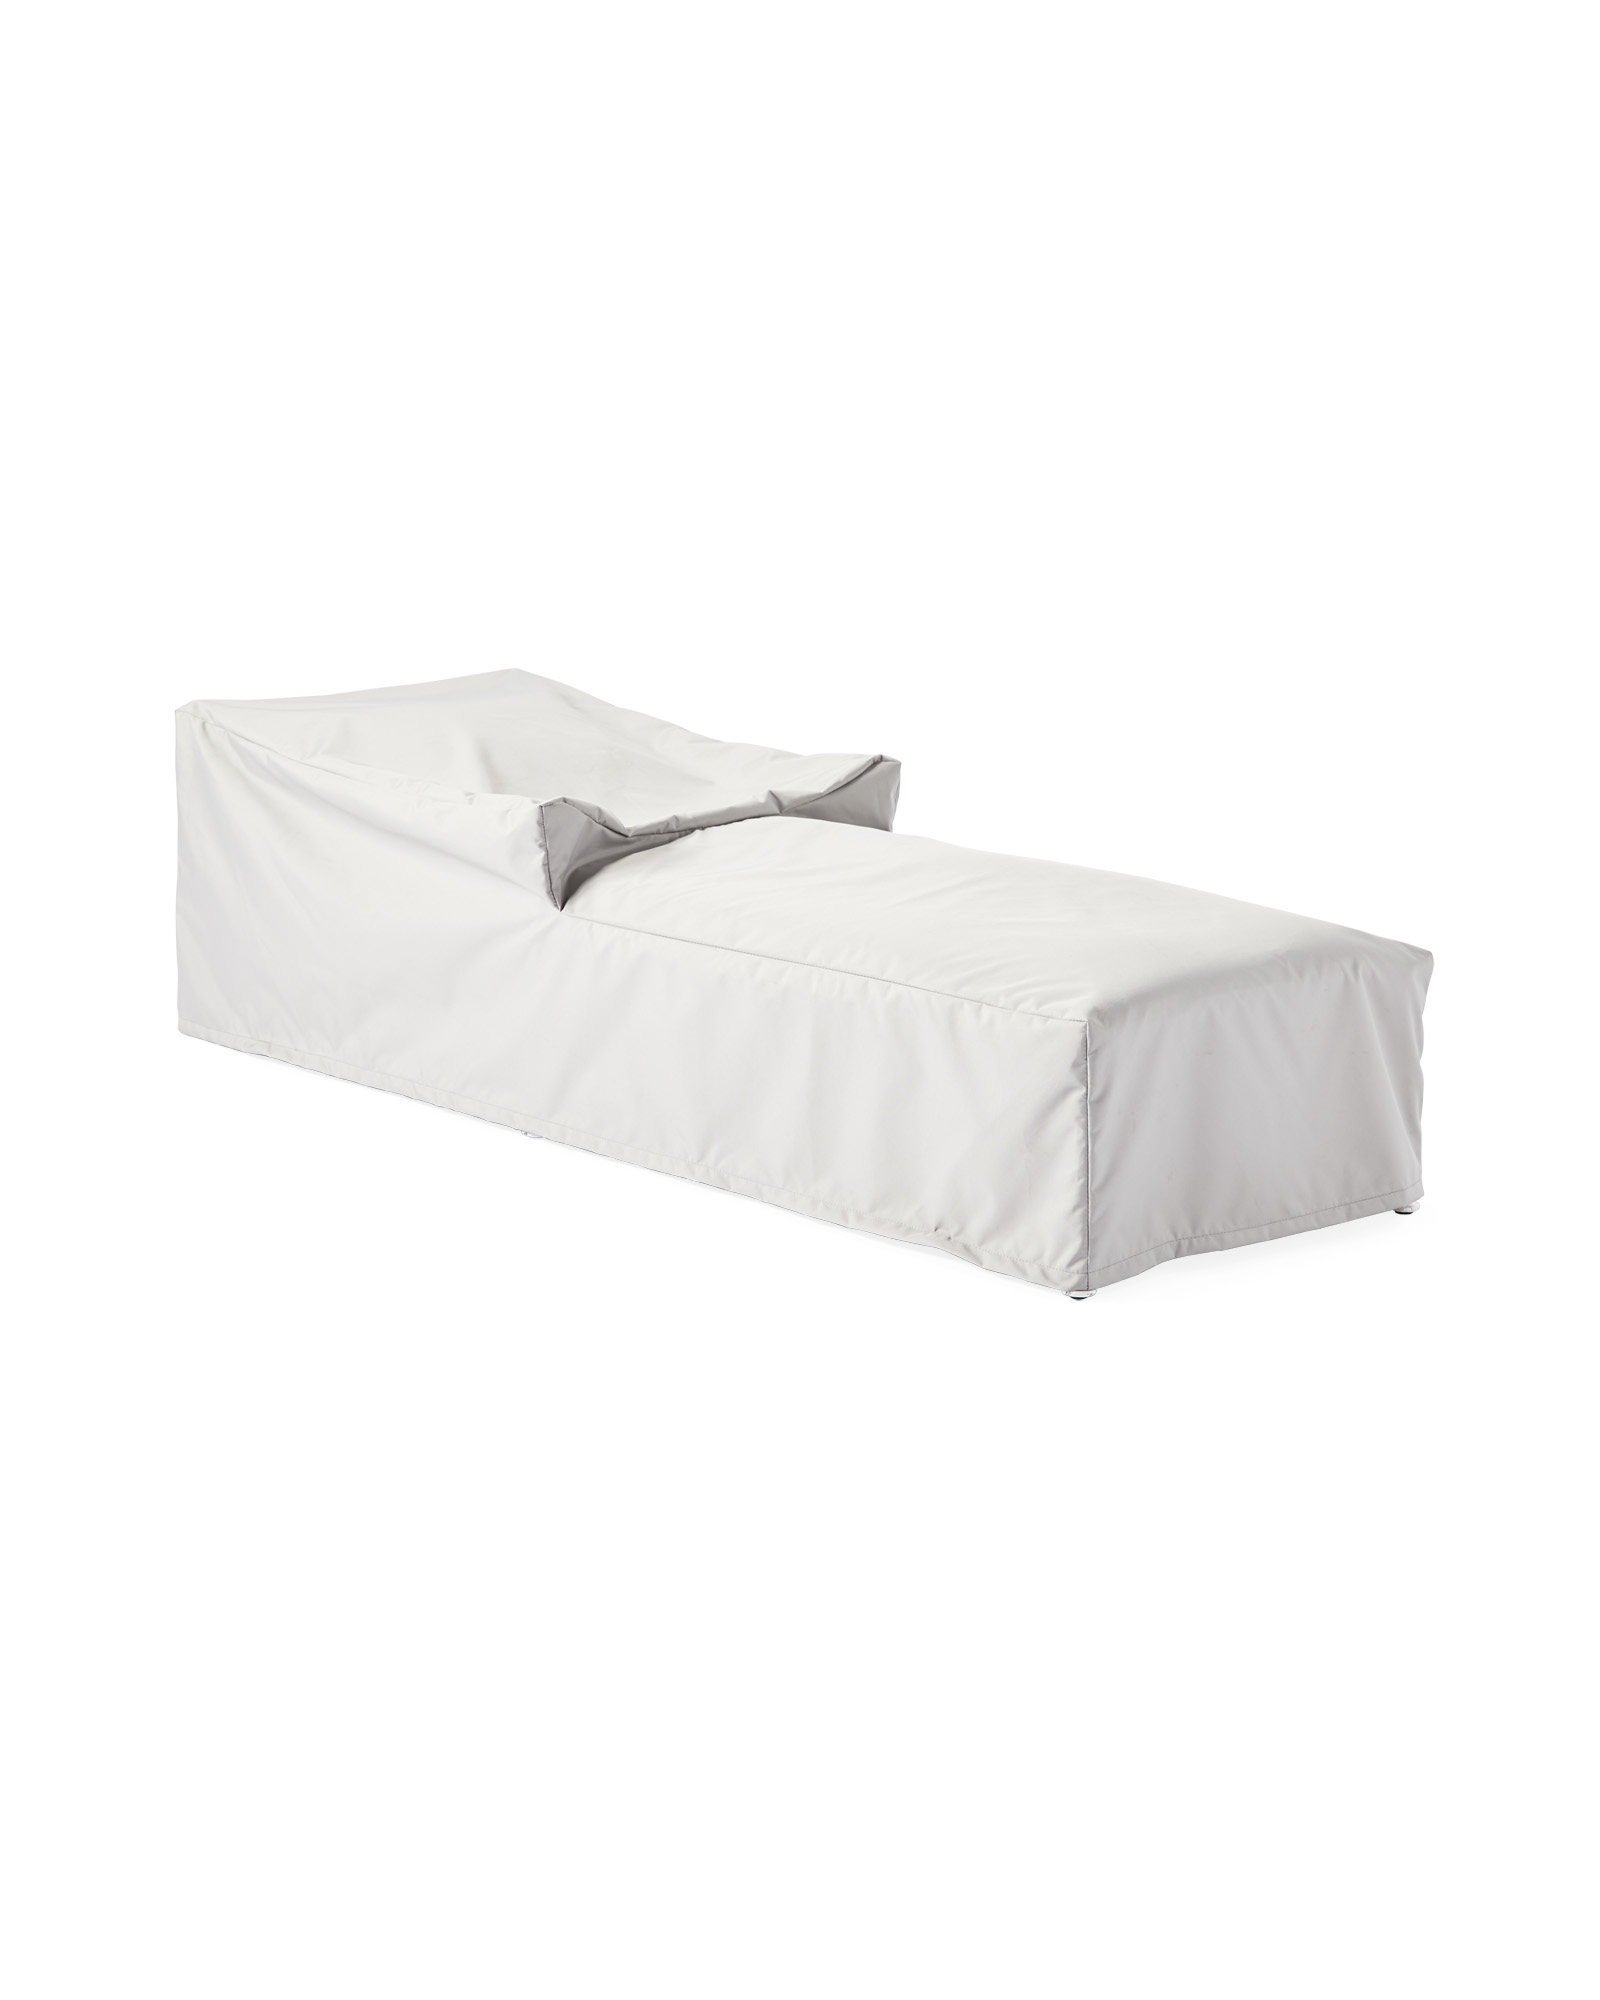 Protective Cover - Gardener Chaise,